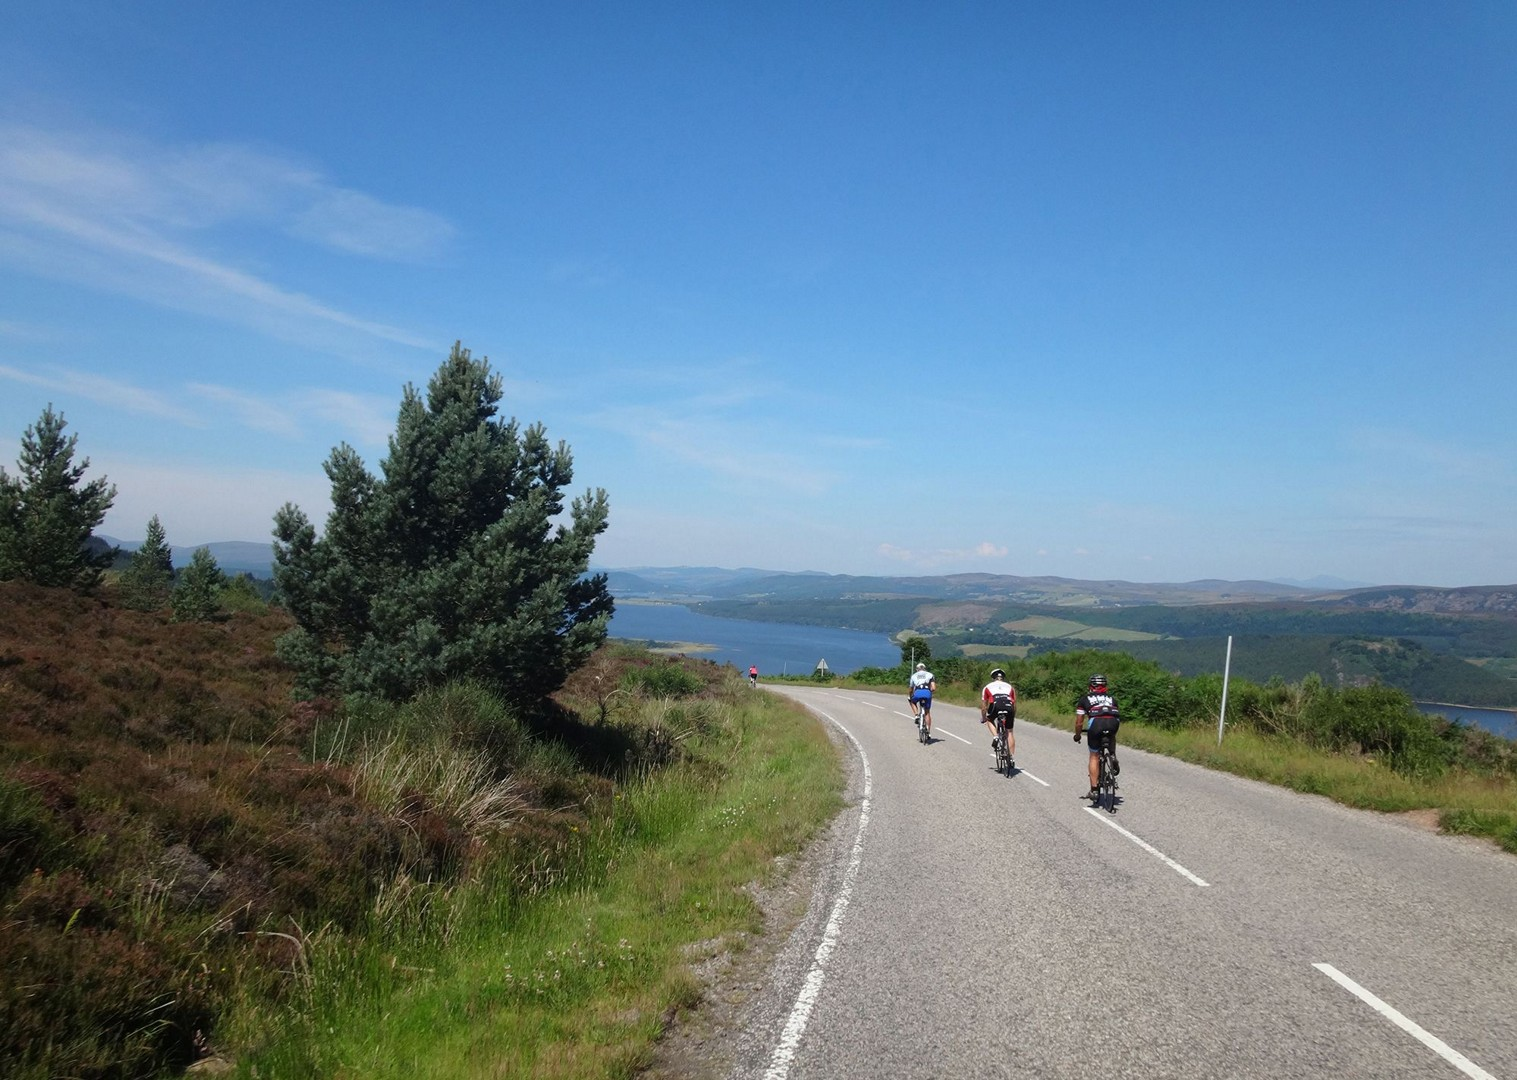 guided-cycling-holiday-uk.jpg - UK - Land's End to John O'Groats Explorer (22 days) - Guided Cycling Holiday - Road Cycling